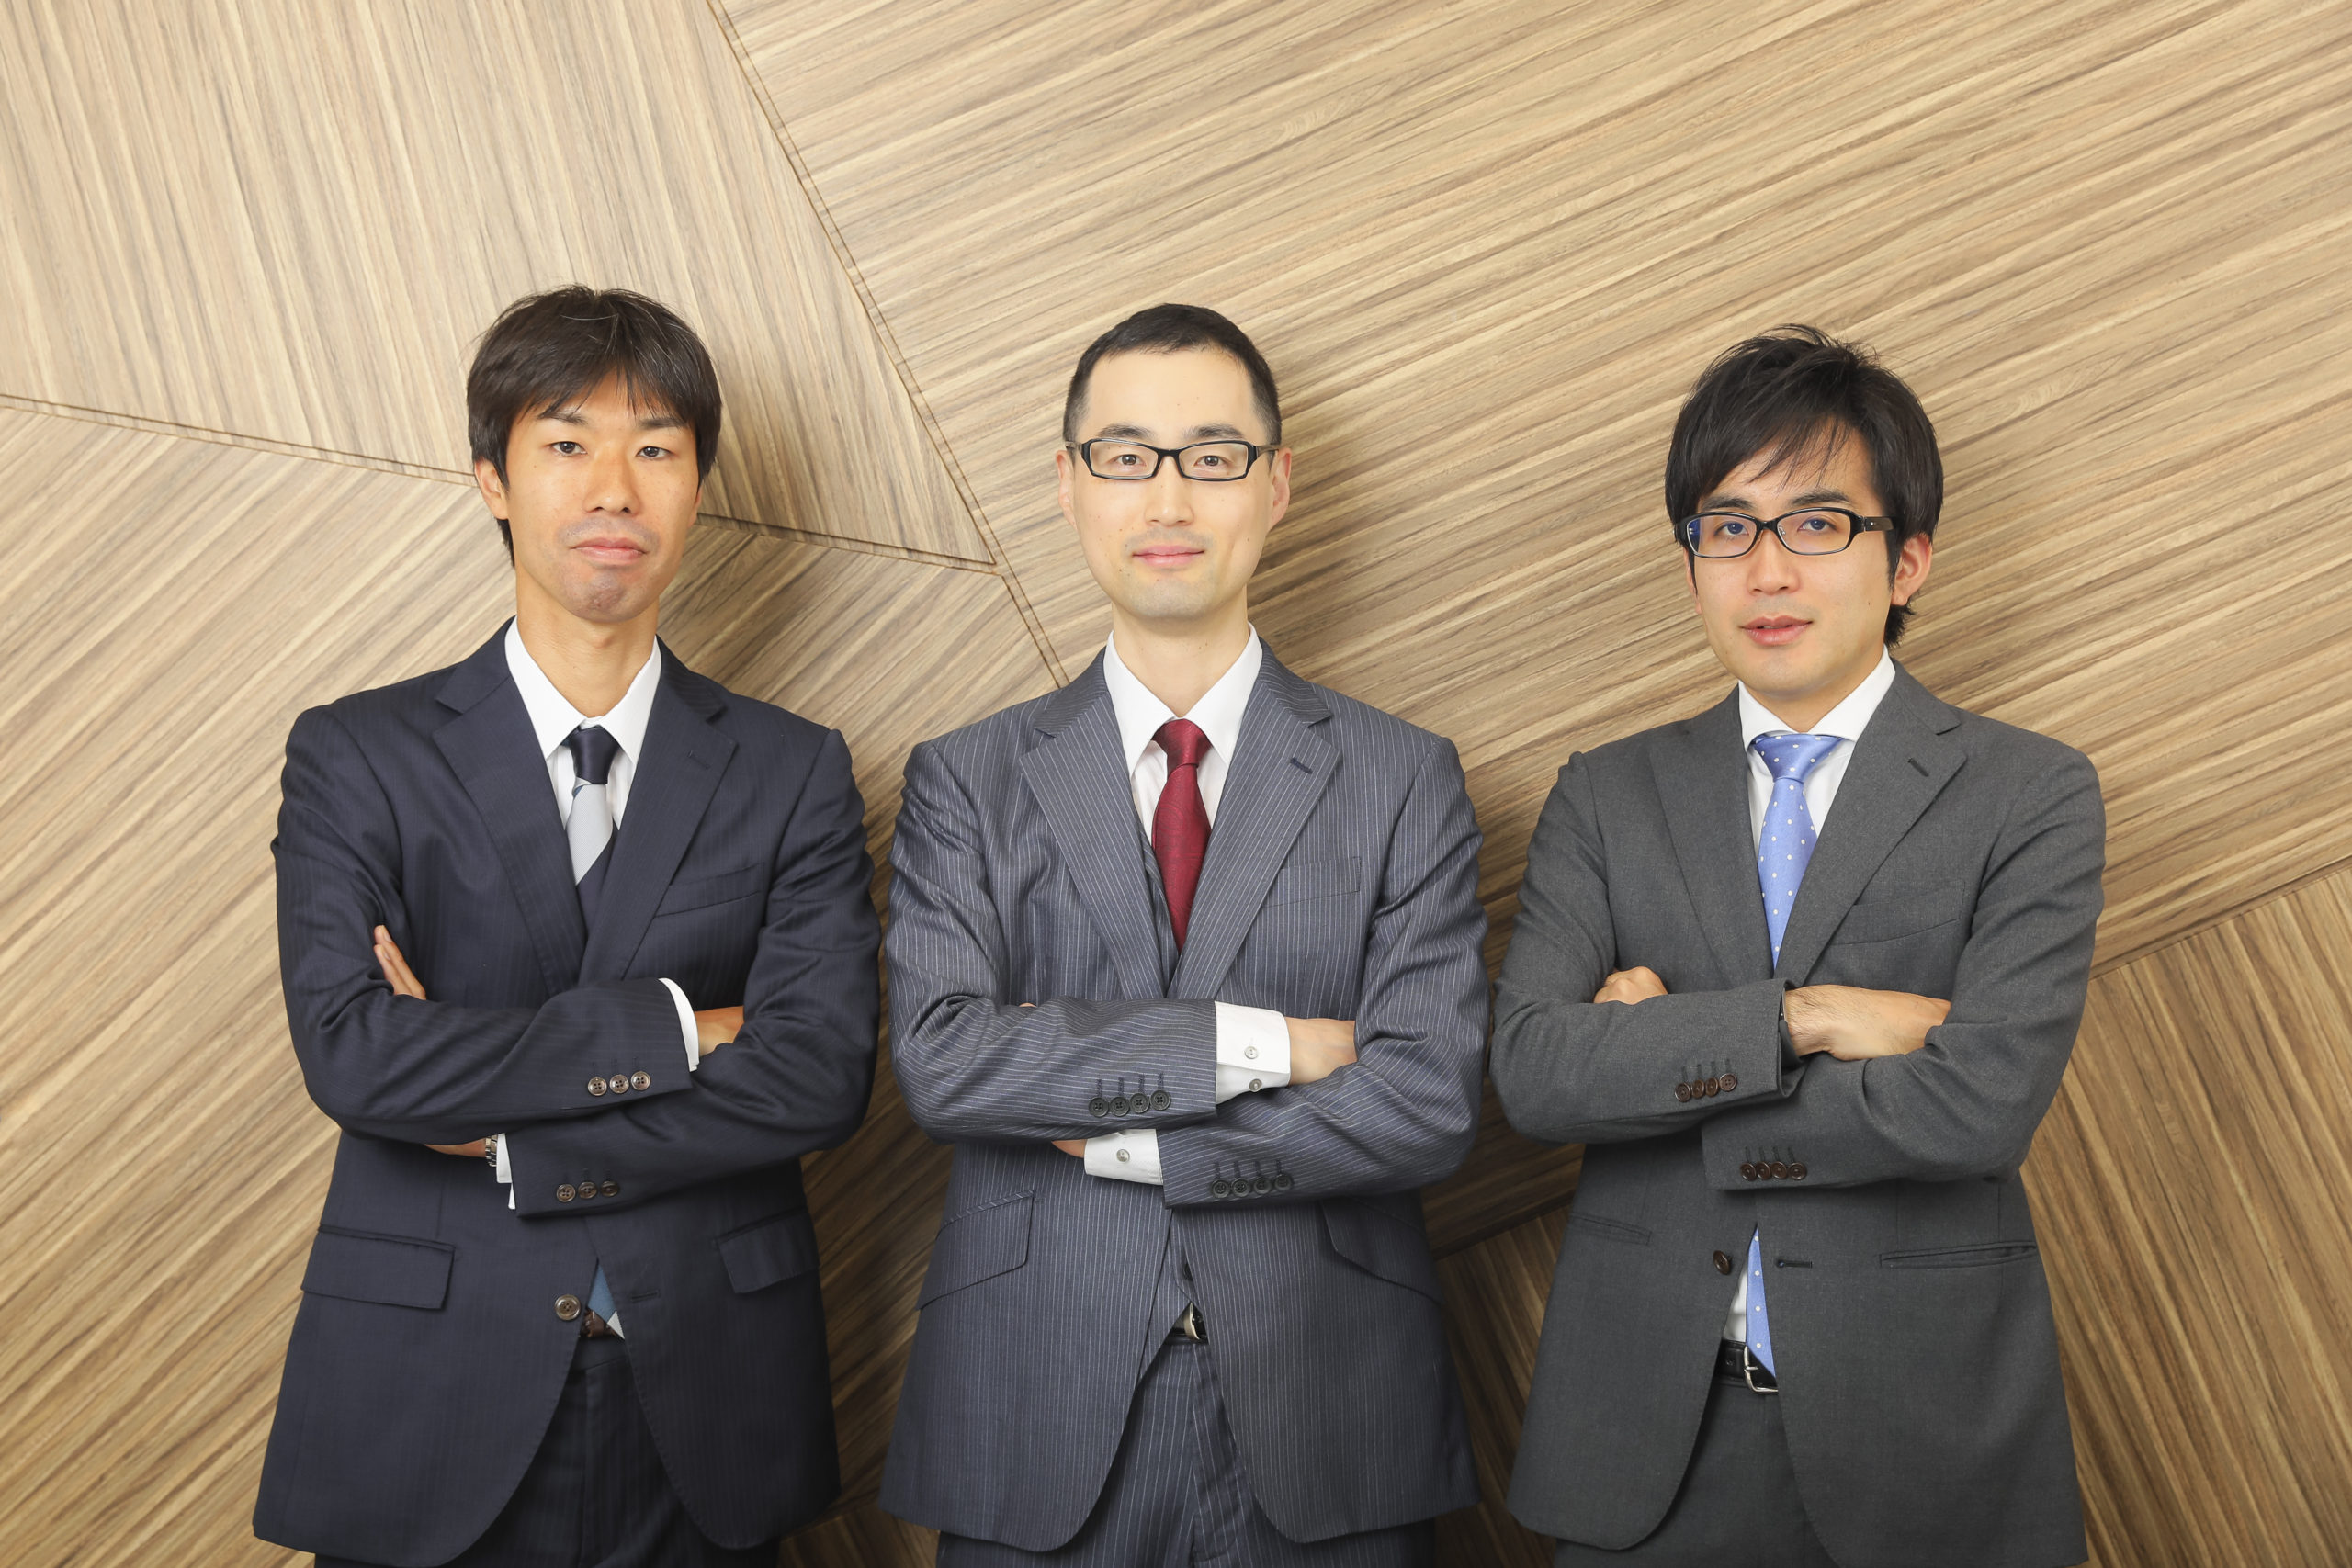 OMEGA HIGH The Consulting Company